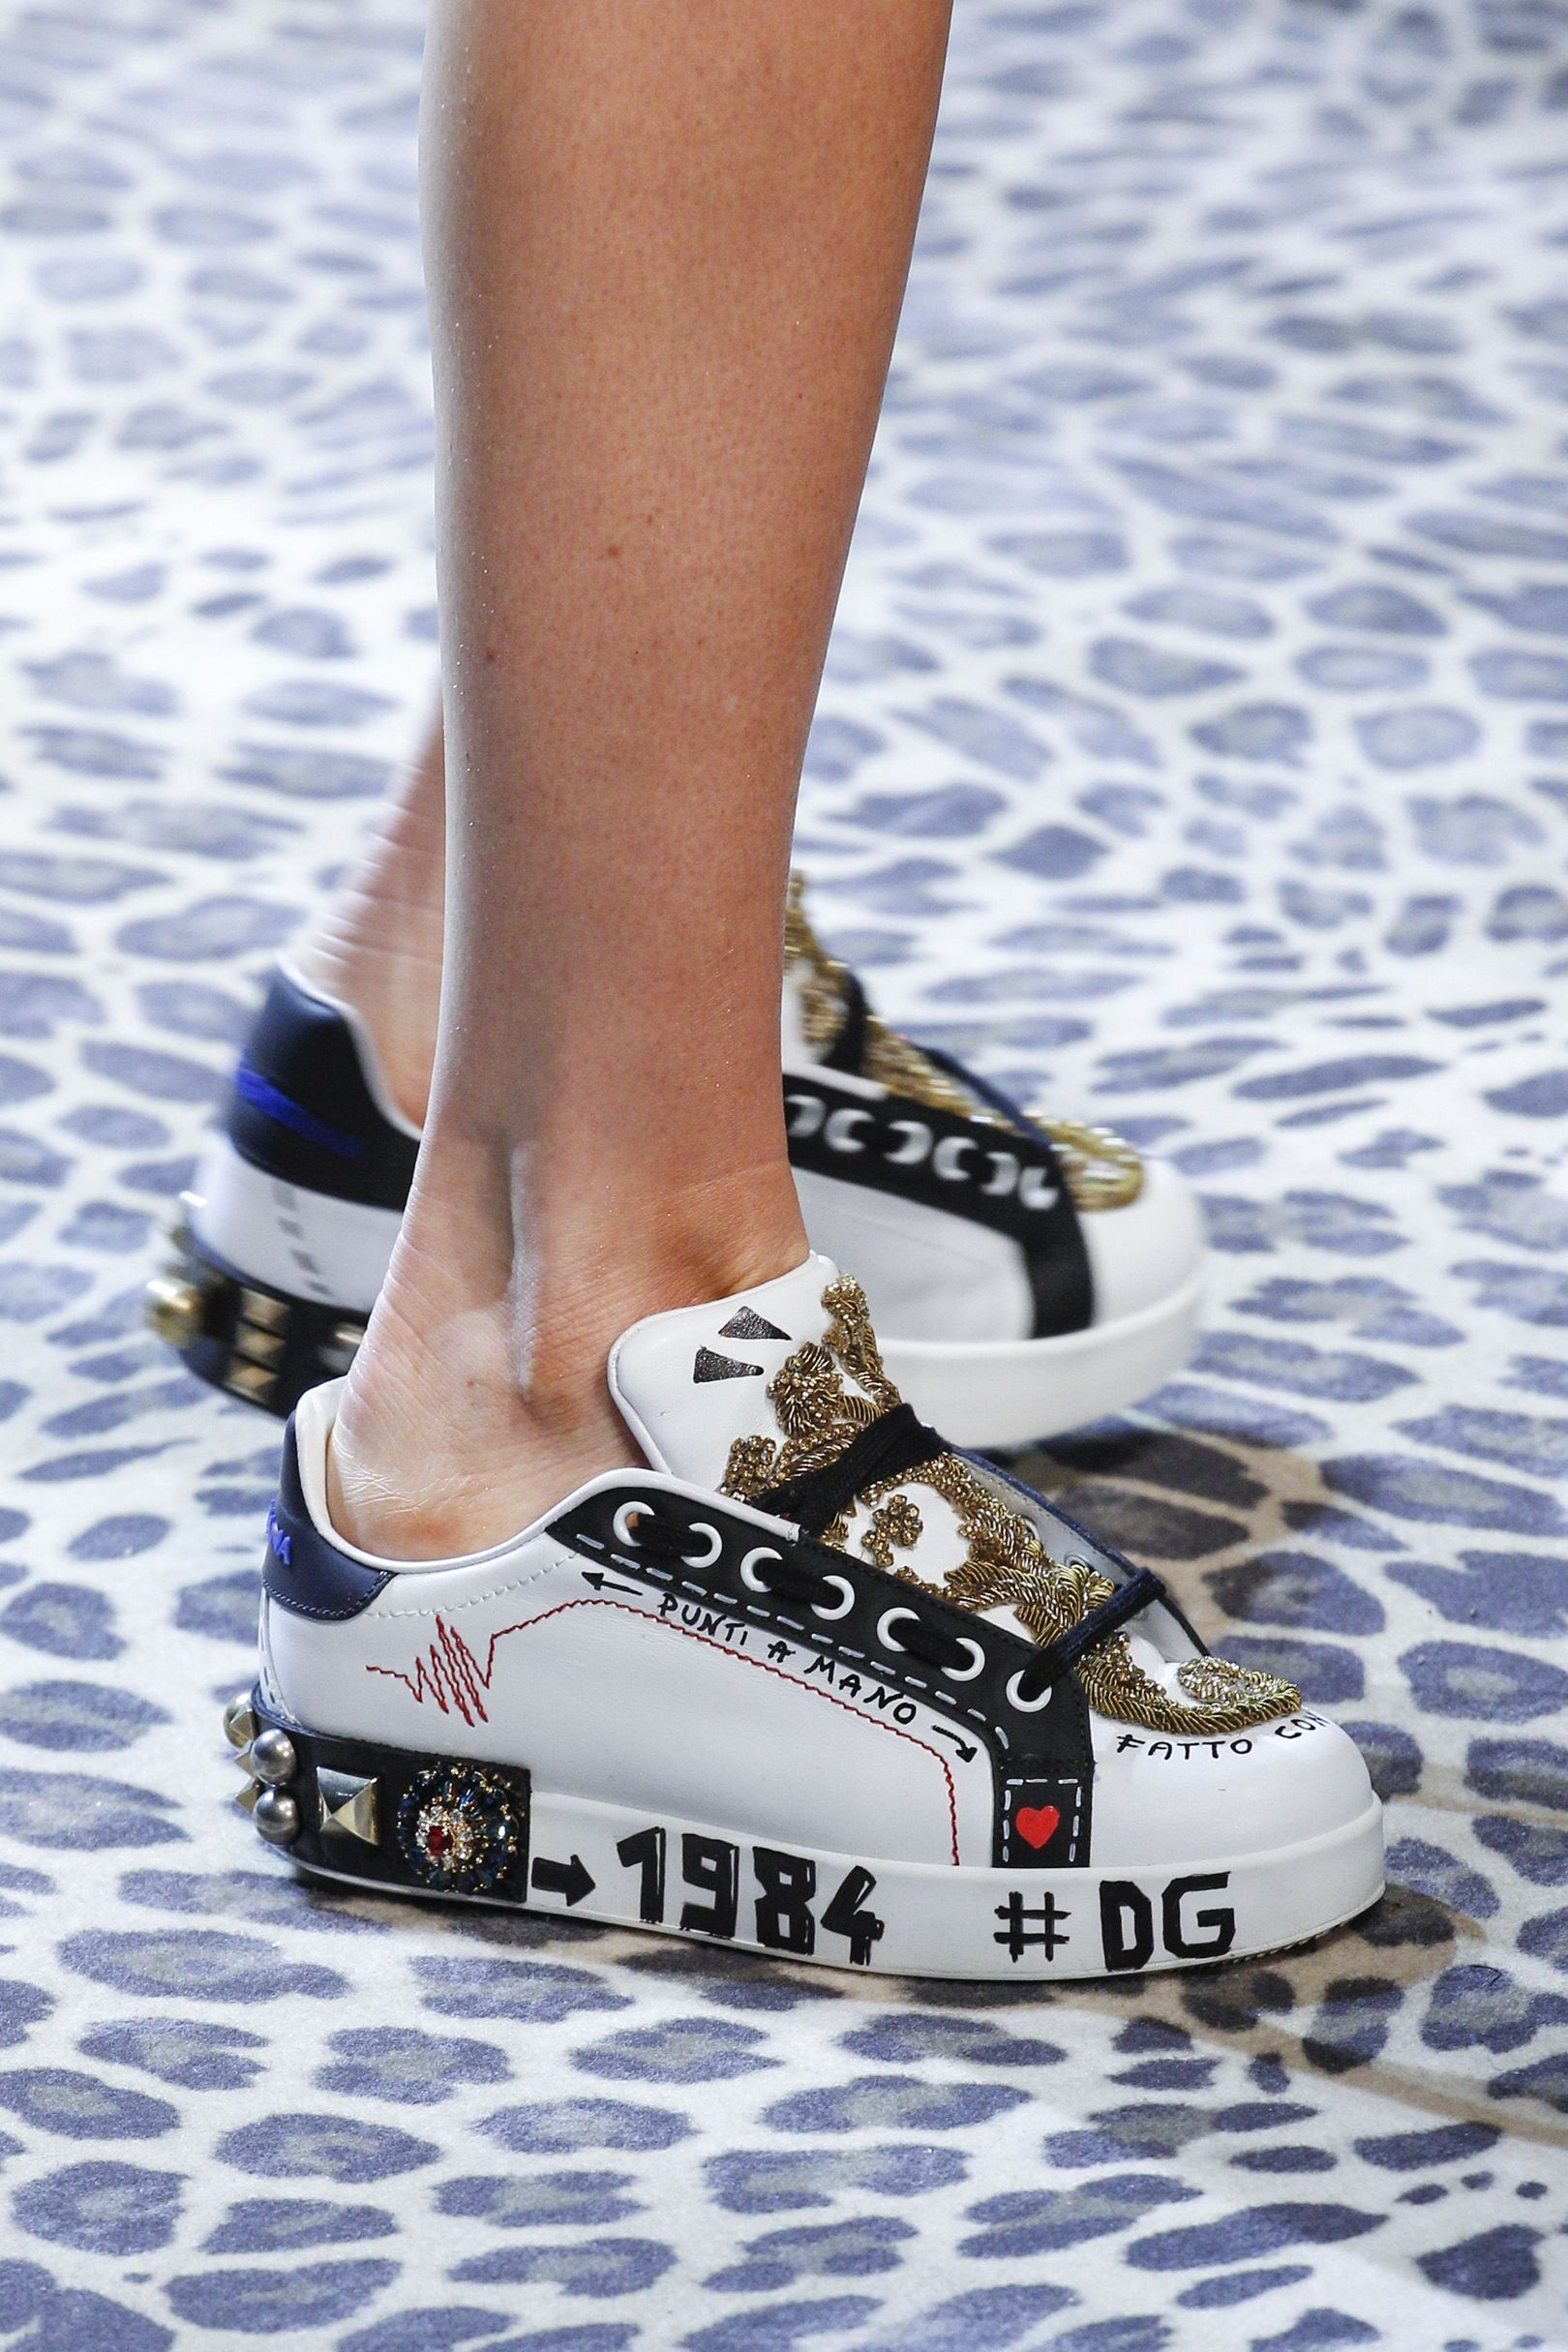 Dolce & Gabbana | The best designer shoes and shoe trends from the Autumn & Winter 2017 fashion collections so far. Browse our gallery of catwalk inspiration and new season shoe styles.